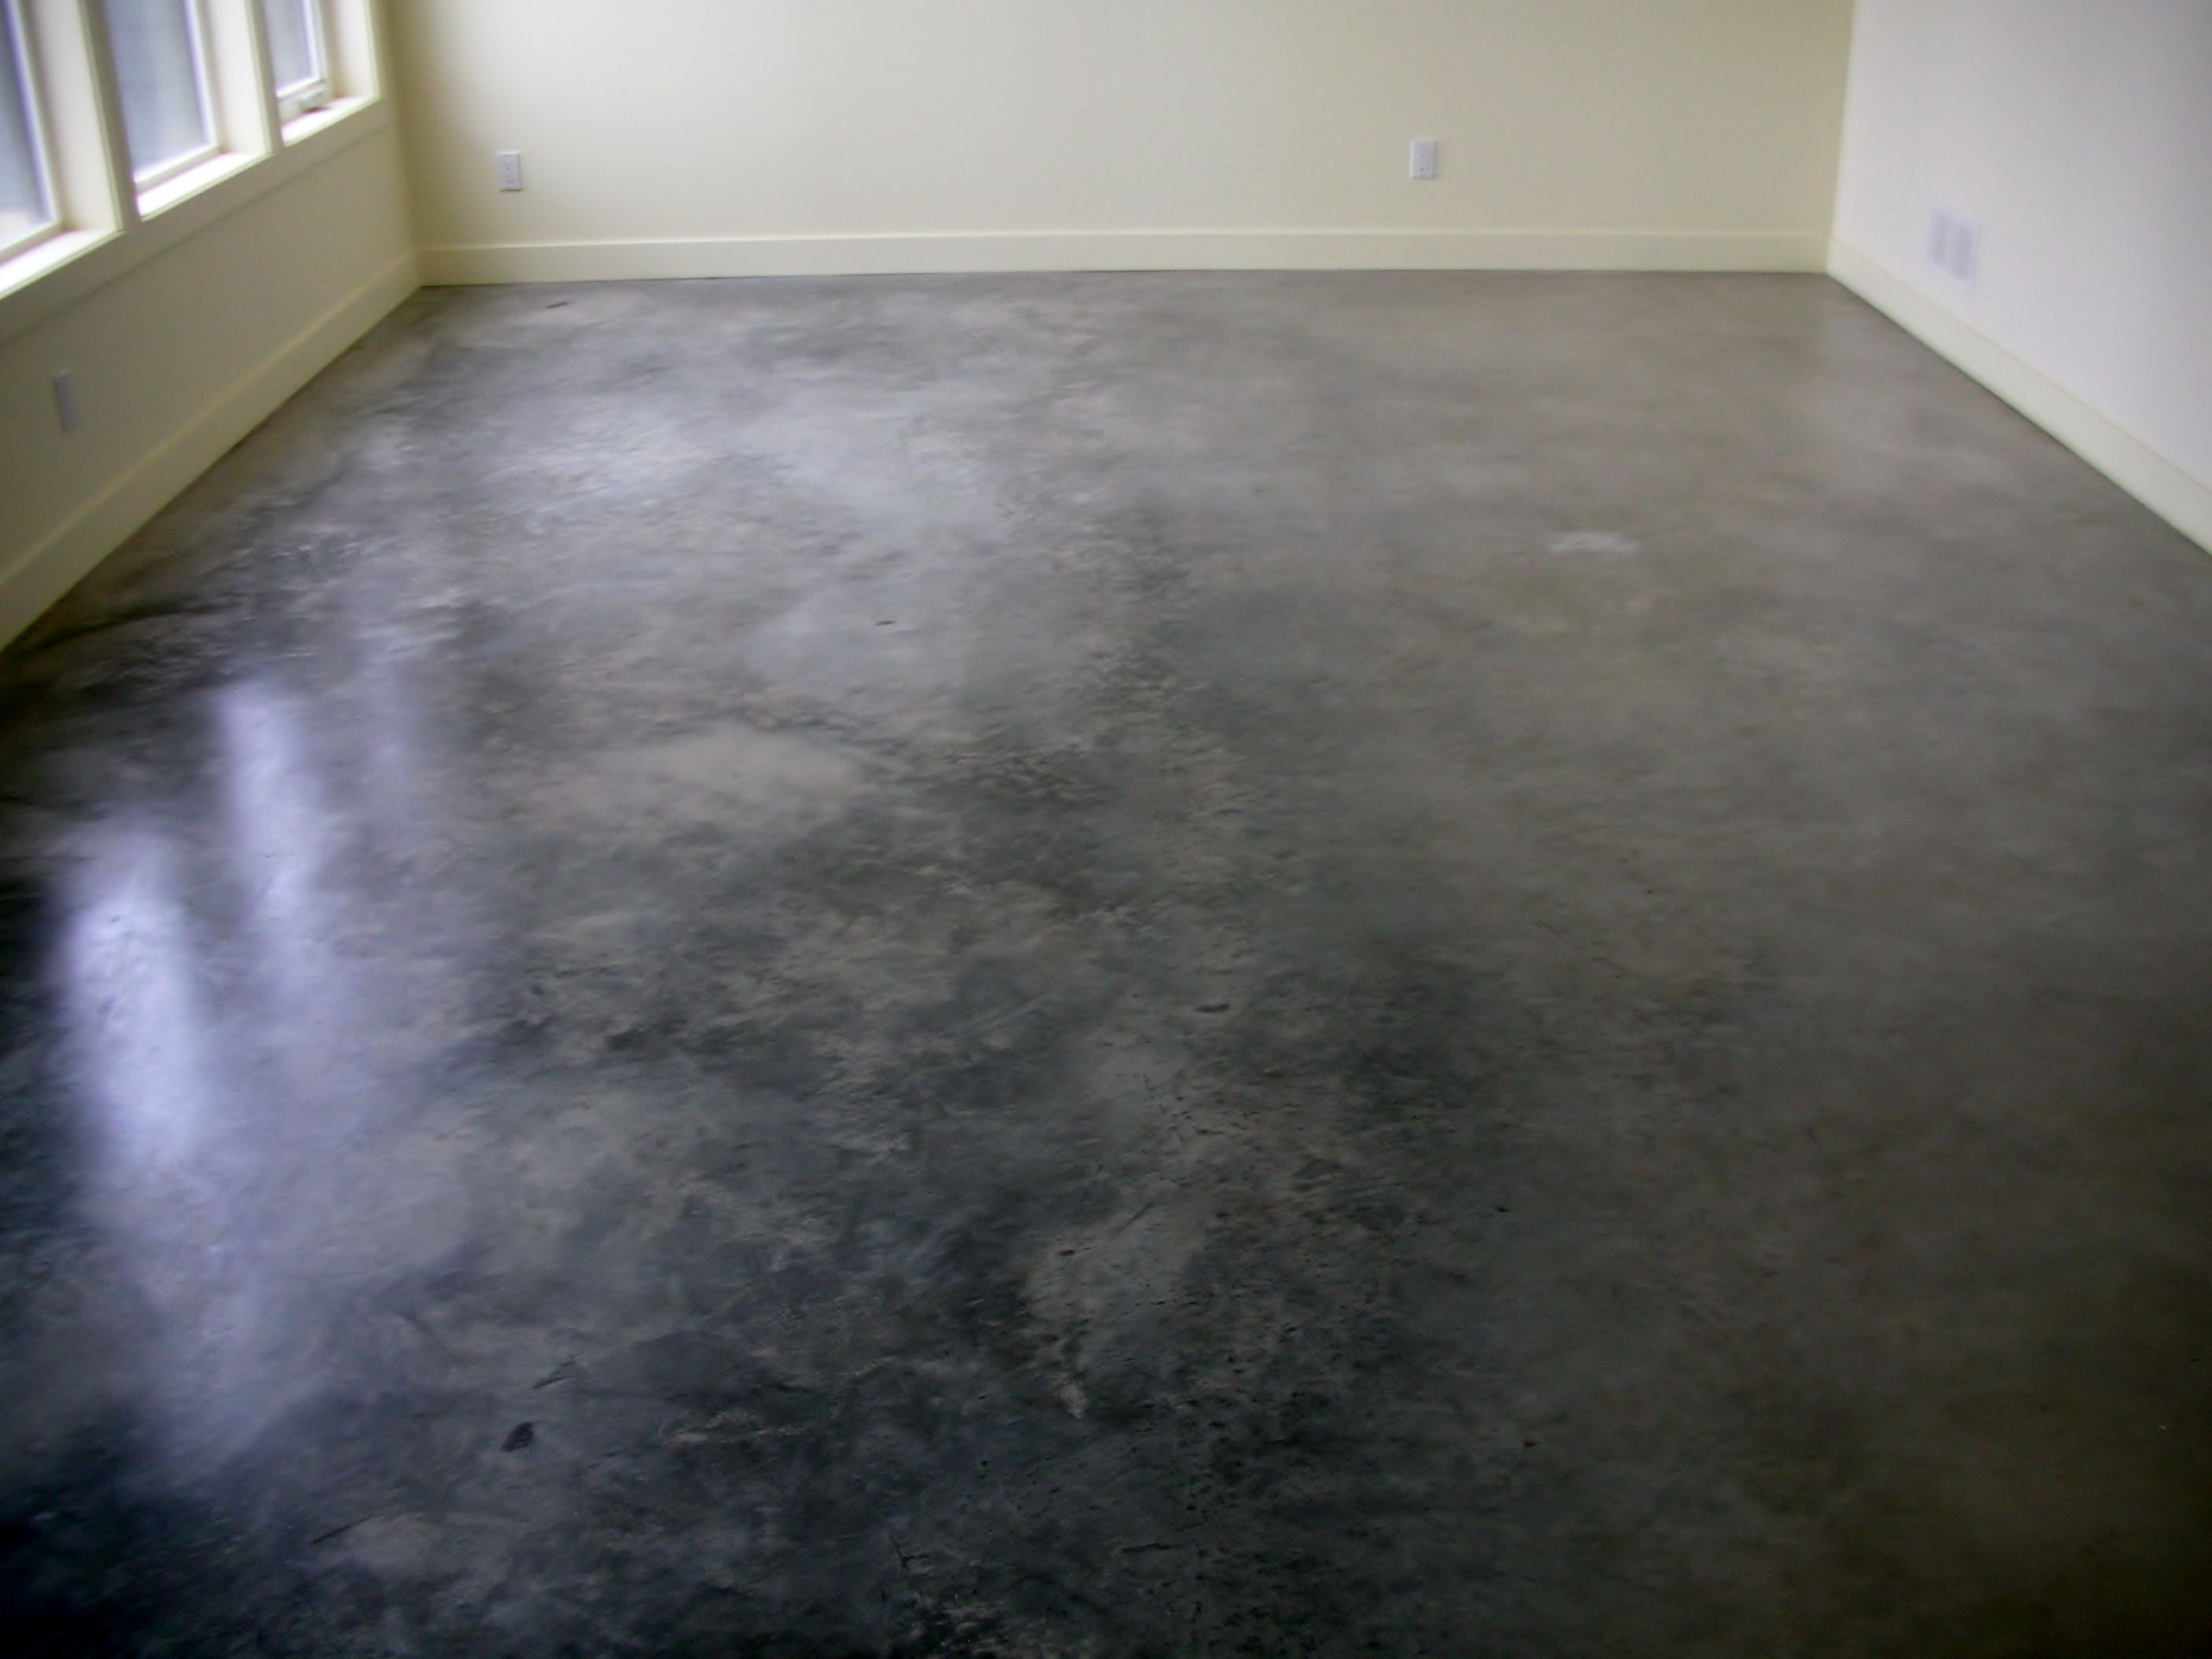 dark polished concrete floor. WE DONT WANT SHINEY BUT THIS IS A COOL BLACK/WORN LOOKING CONCRETE FLOOR Dark Polished Concrete Floor C